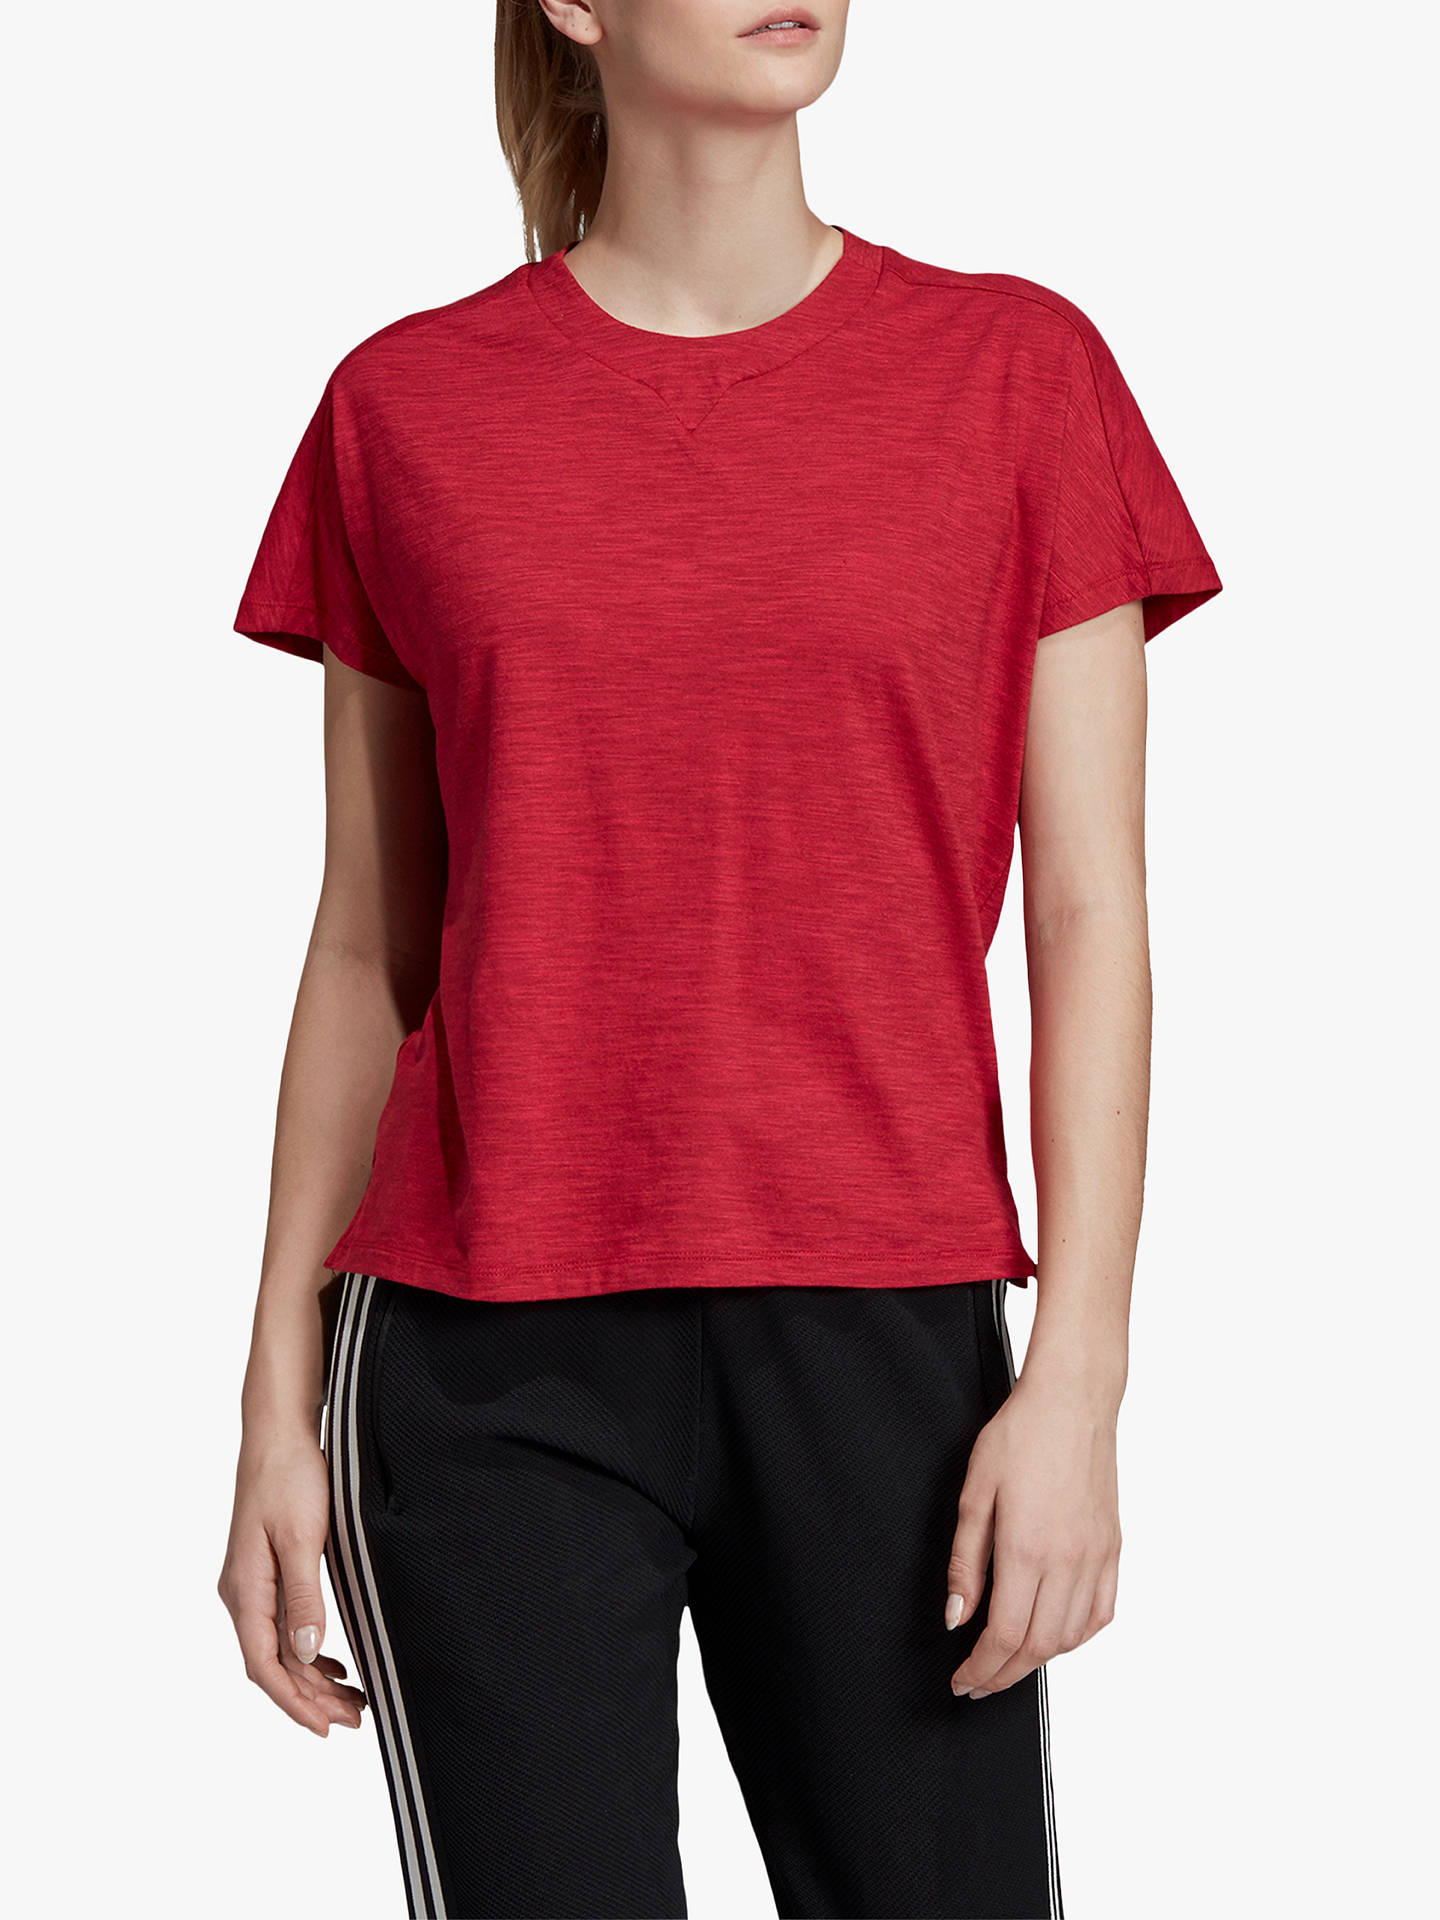 9f3772adc Buy adidas ID Winners AtTEETude T-Shirt, Active Maroon, S Online at  johnlewis ...